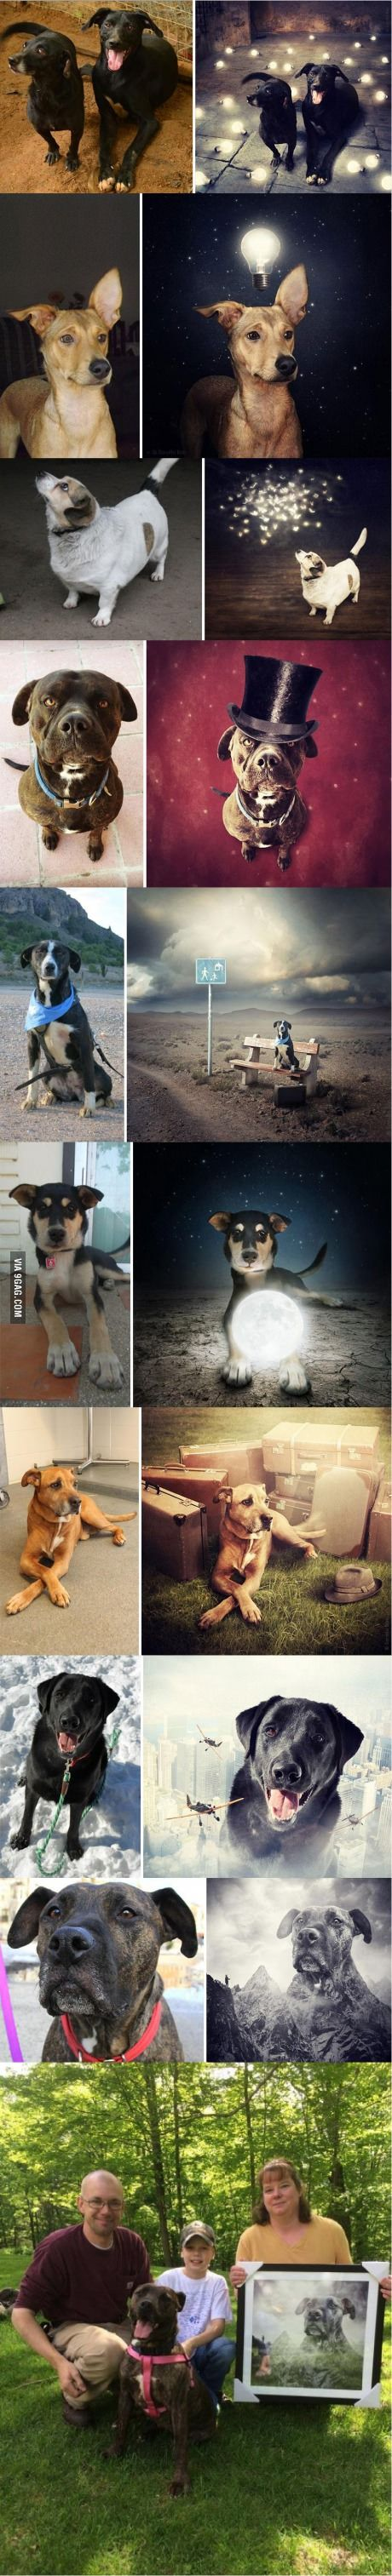 Photographer creates surreal montages with abandoned dogs to encourage adoption